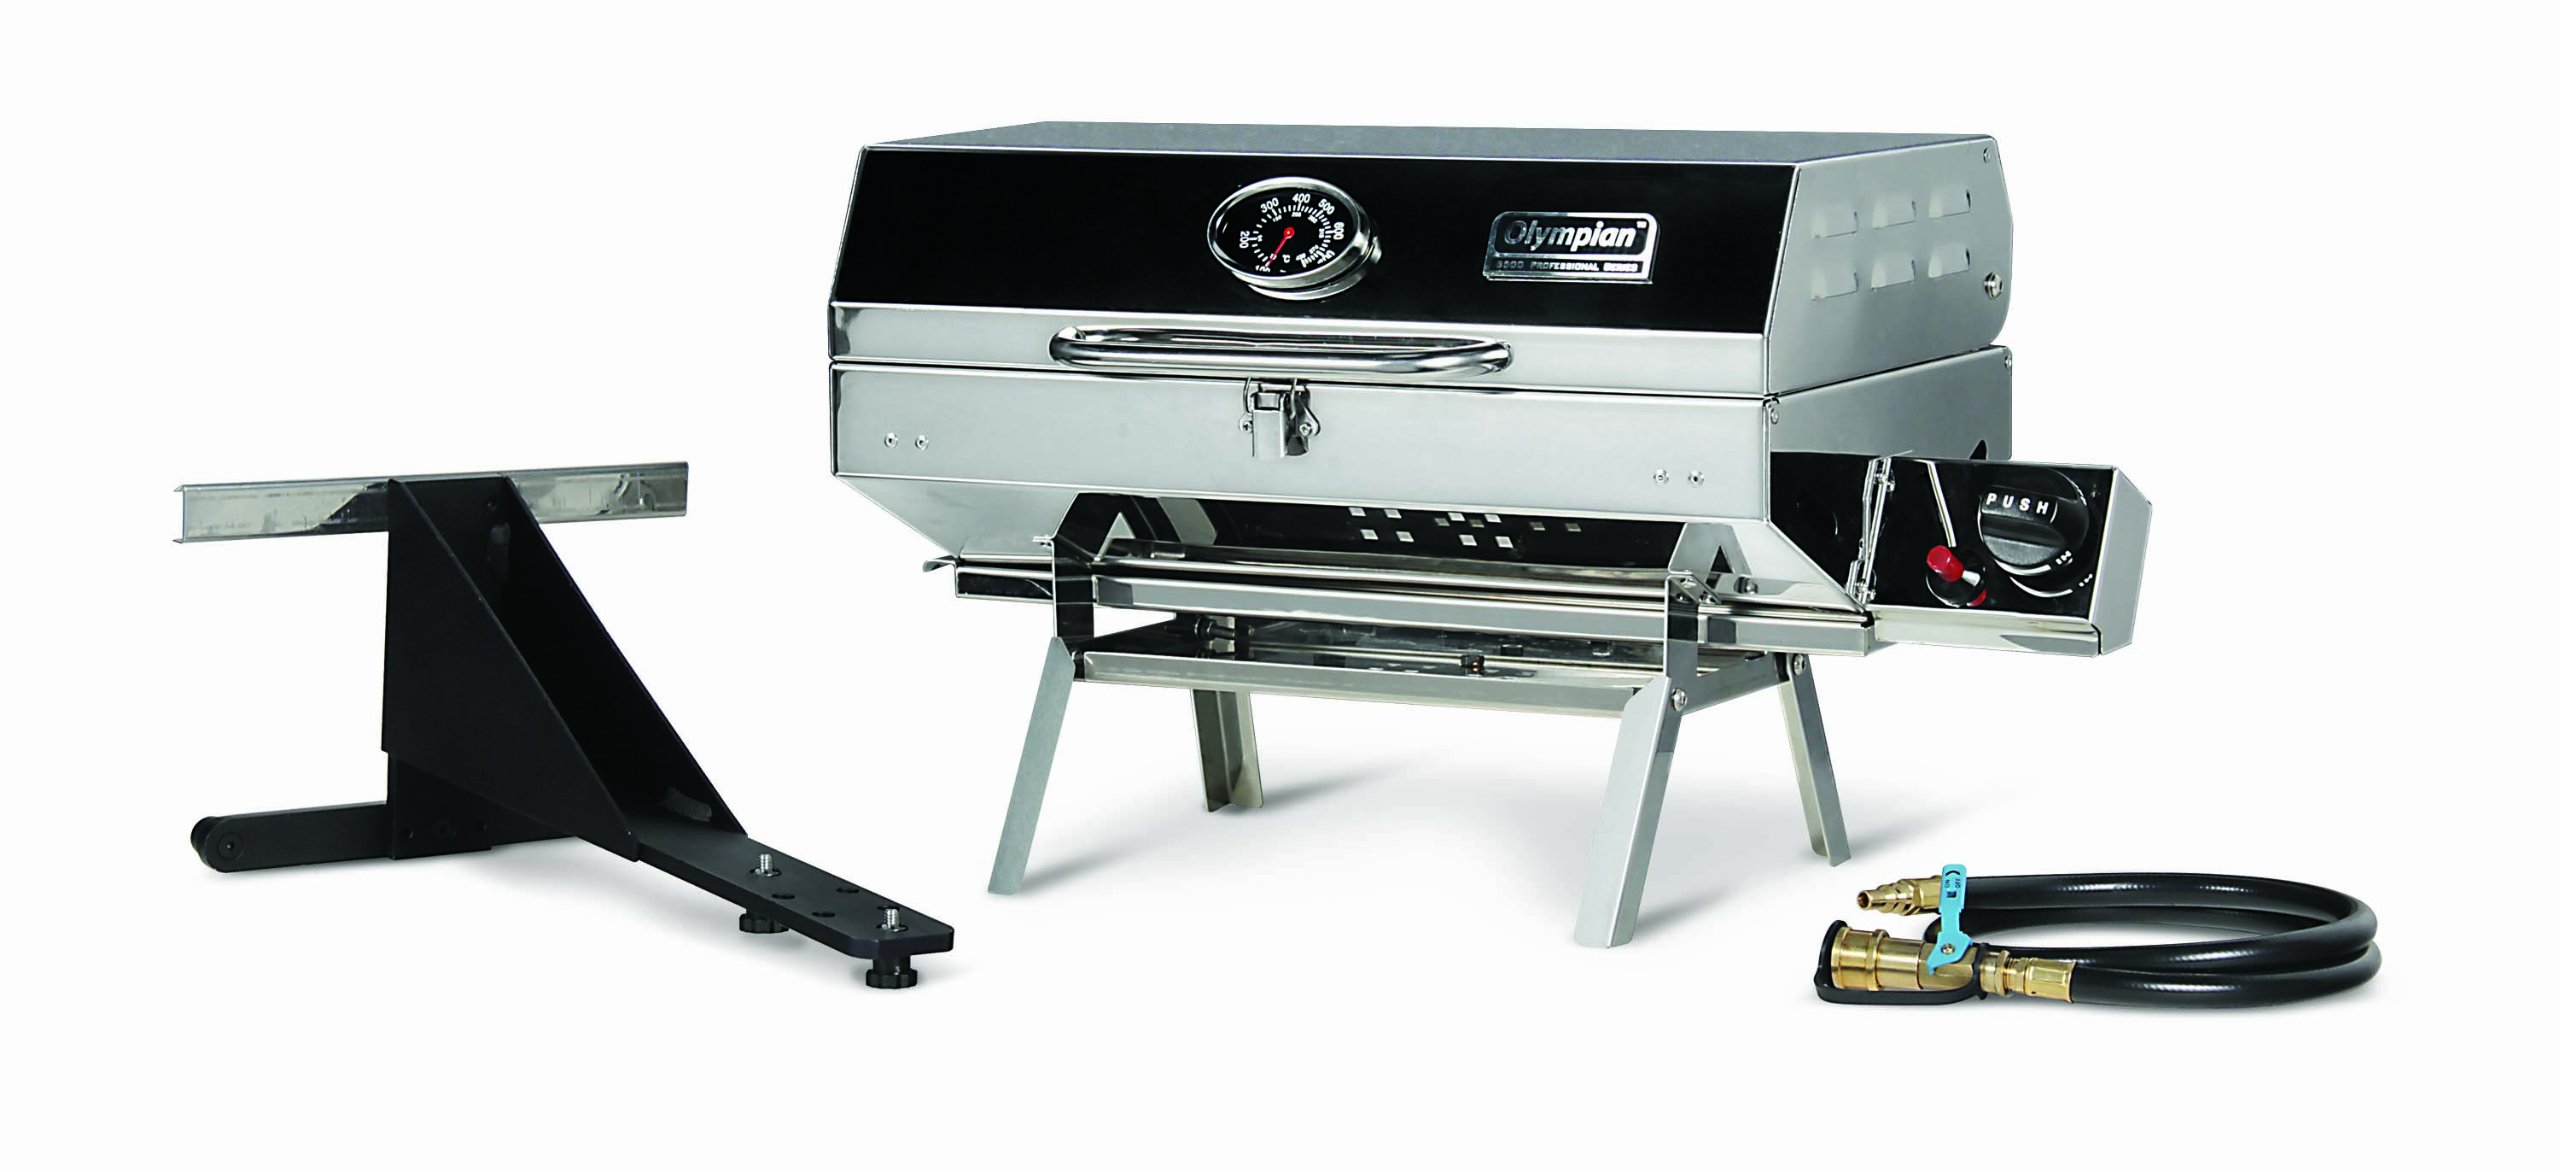 Camco Olympian 5500 Stainless Steel Portable Grill, Connects To Low Pressure Supply On RV, Includes RV Mounting Bracket And Folding Tabletop Legs (180 Square Inches Of Cooking Surface)